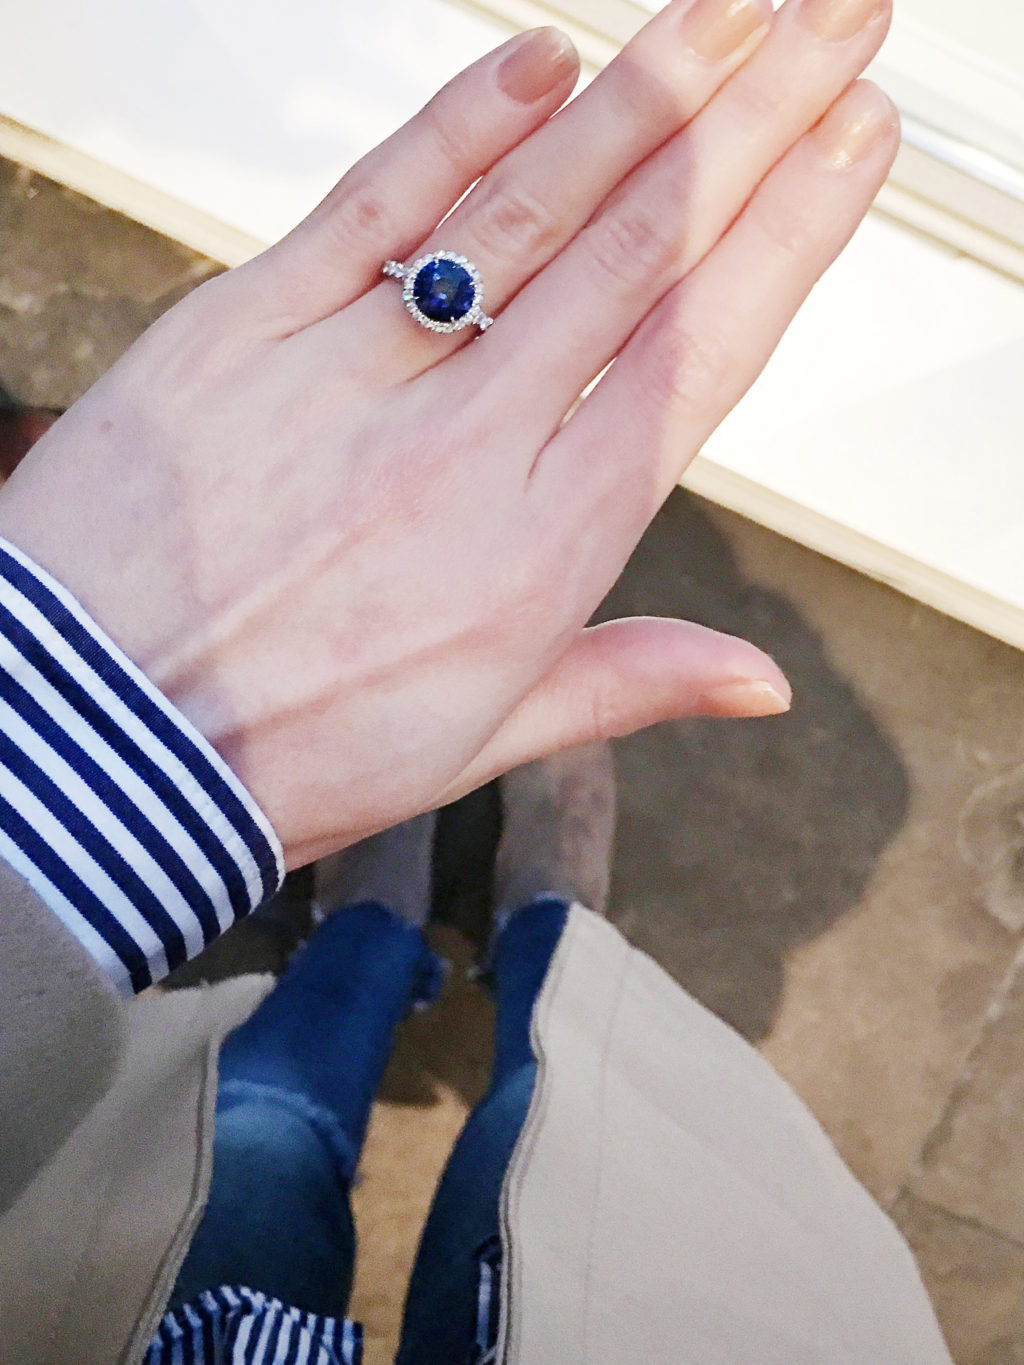 the blondielocks toroto based fashion and lifestyle blog. the blondielocks wearing david yurman. david yurman. david yurman. DY Capri Engagement Ring with Blue Sapphire in Platinum, Cushion. David Yurman Capri Engagement Ring with Blue Sapphire in Platinum, Cushion